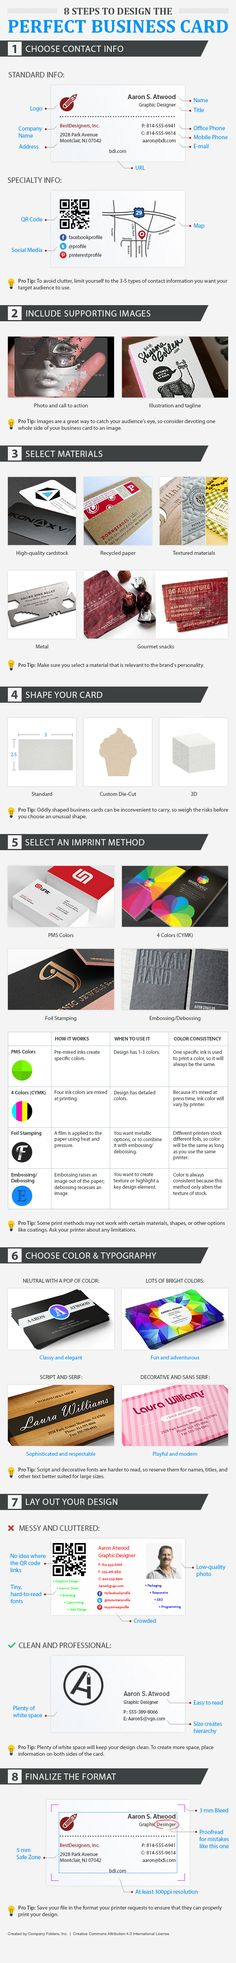 12 Tips To Design The Perfect Business Card #infographic #Business #Design #BusinessCards